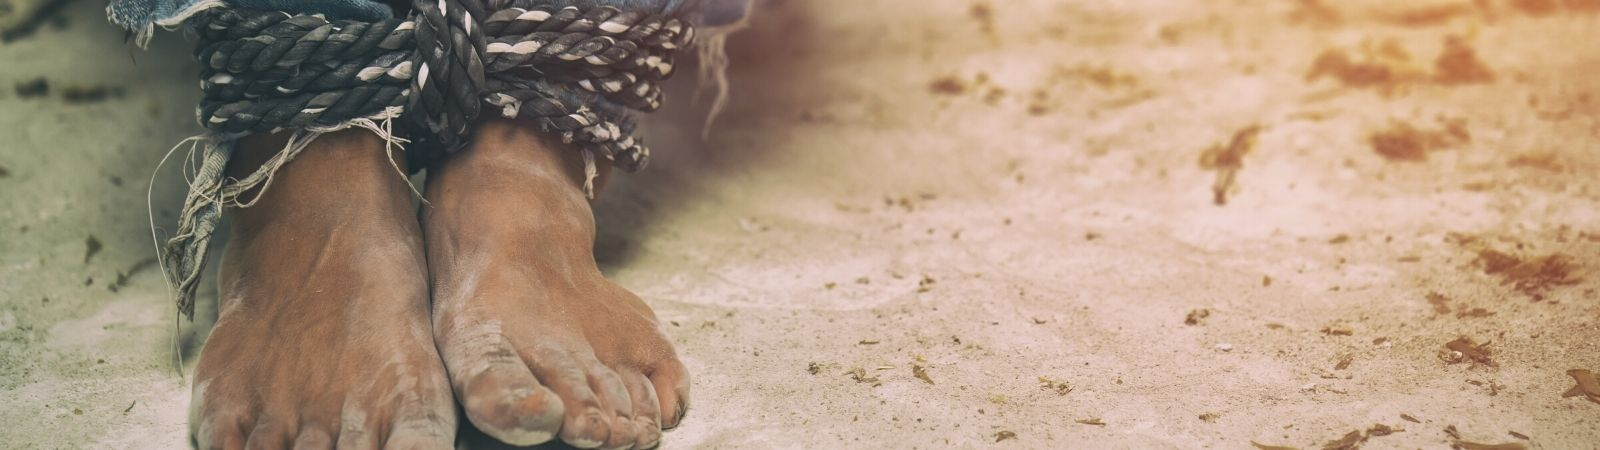 Child's bare feet in sand with rope tied around his legs to symbolize human trafficking.